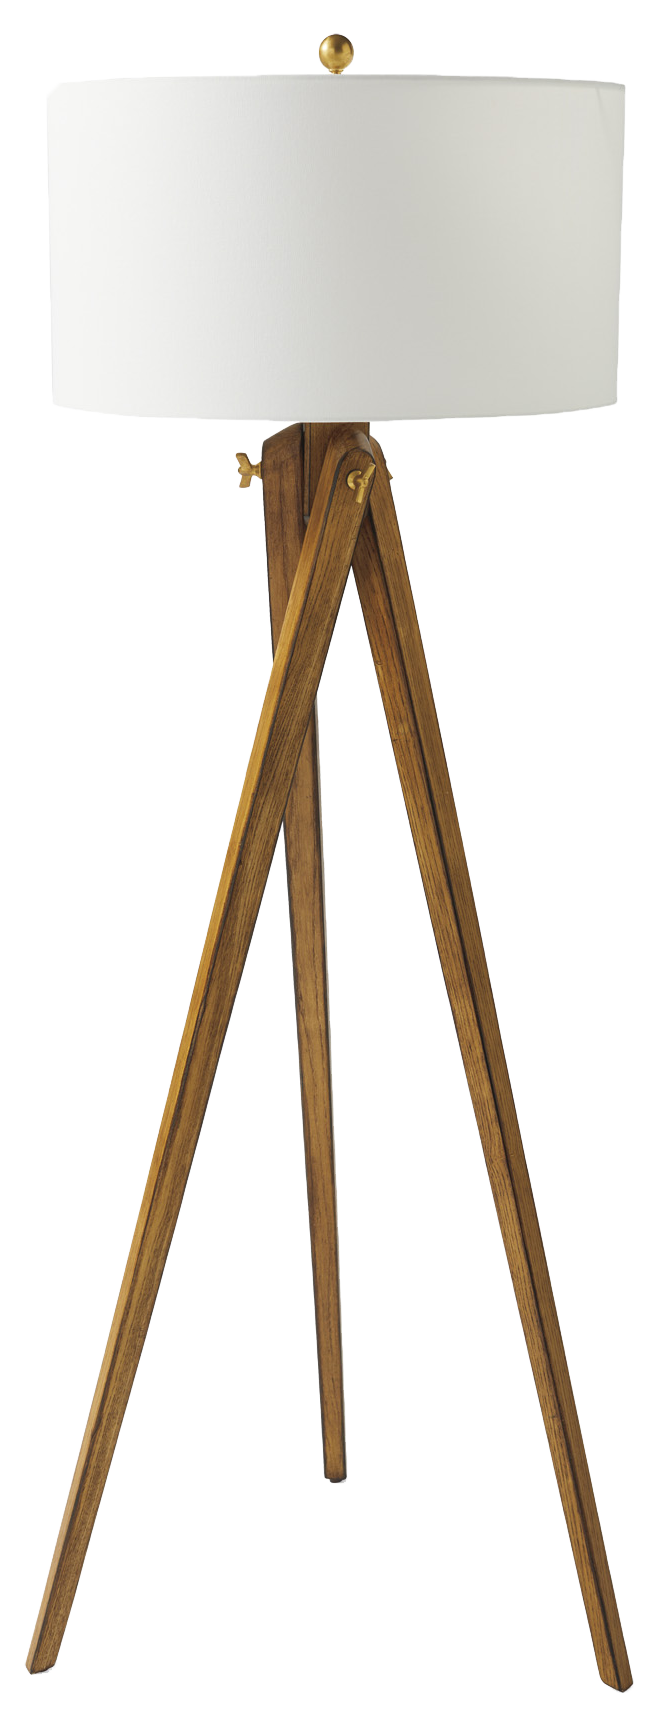 Lighting_Tripod_Floor_Lamp_MV_0393_Crop_SH copy.png